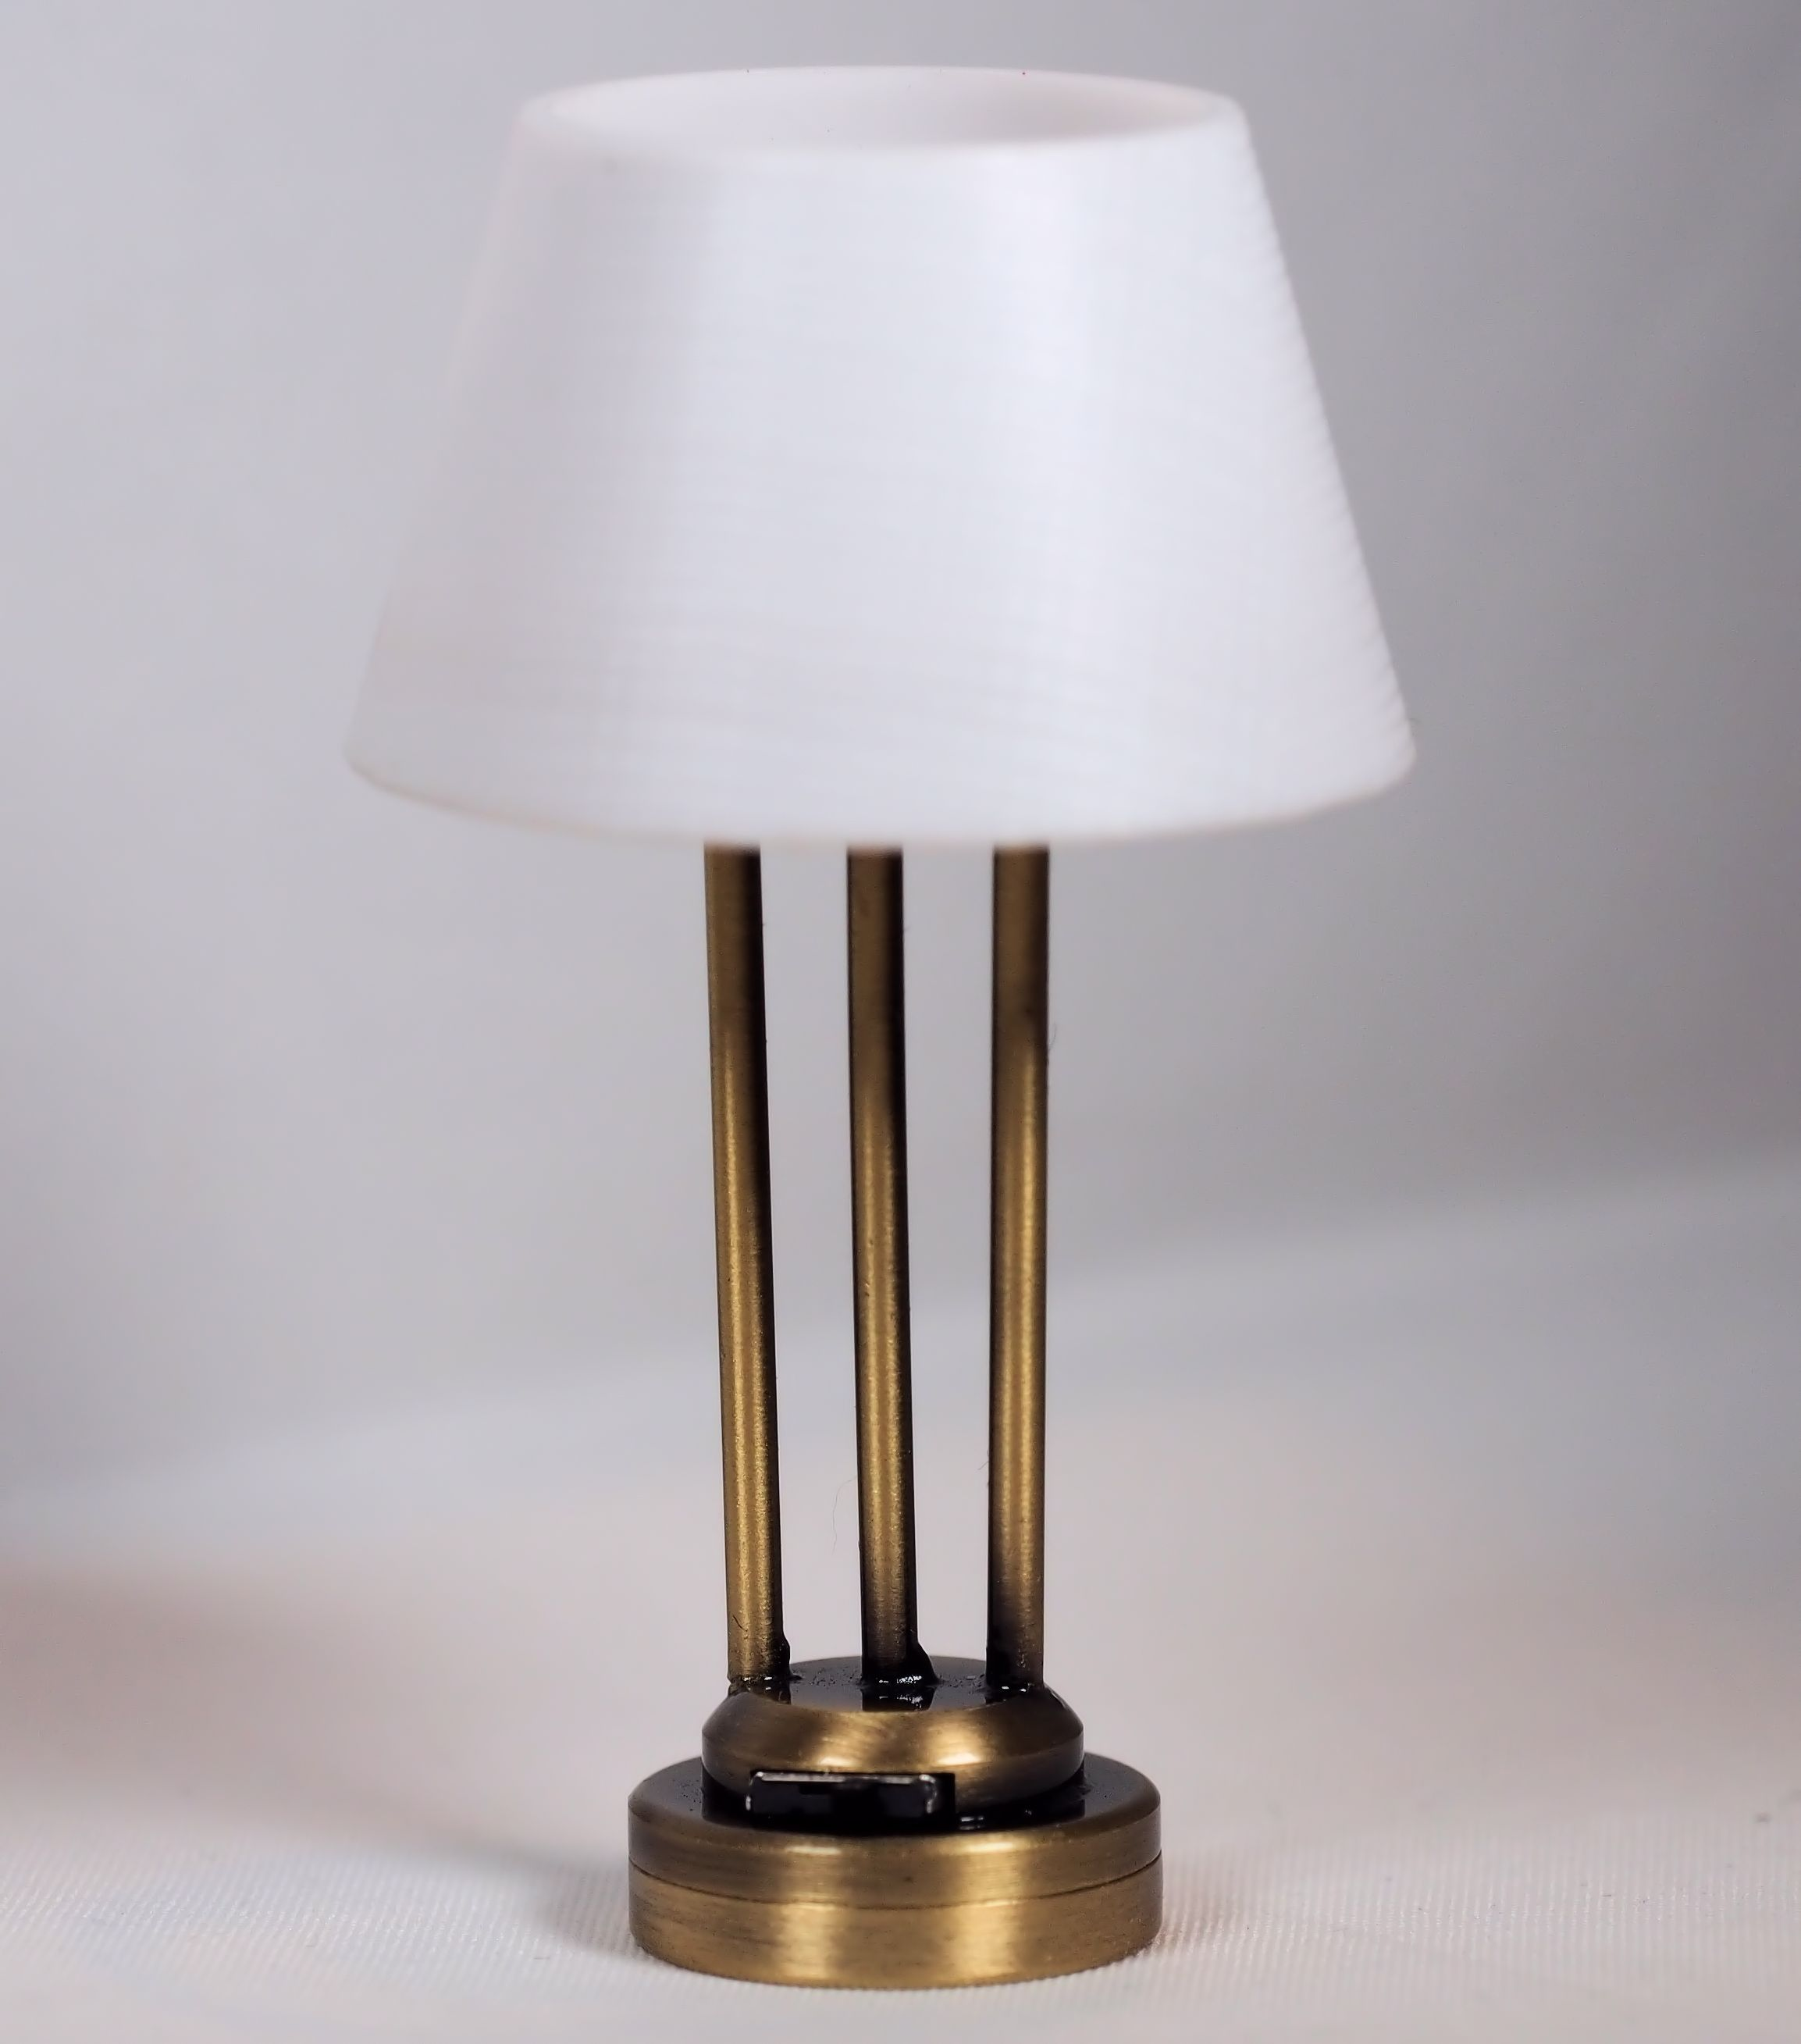 The new yorker battery operated table lamp t28 t28 2995 battery operated table lamp t28 click to enlarge aloadofball Images